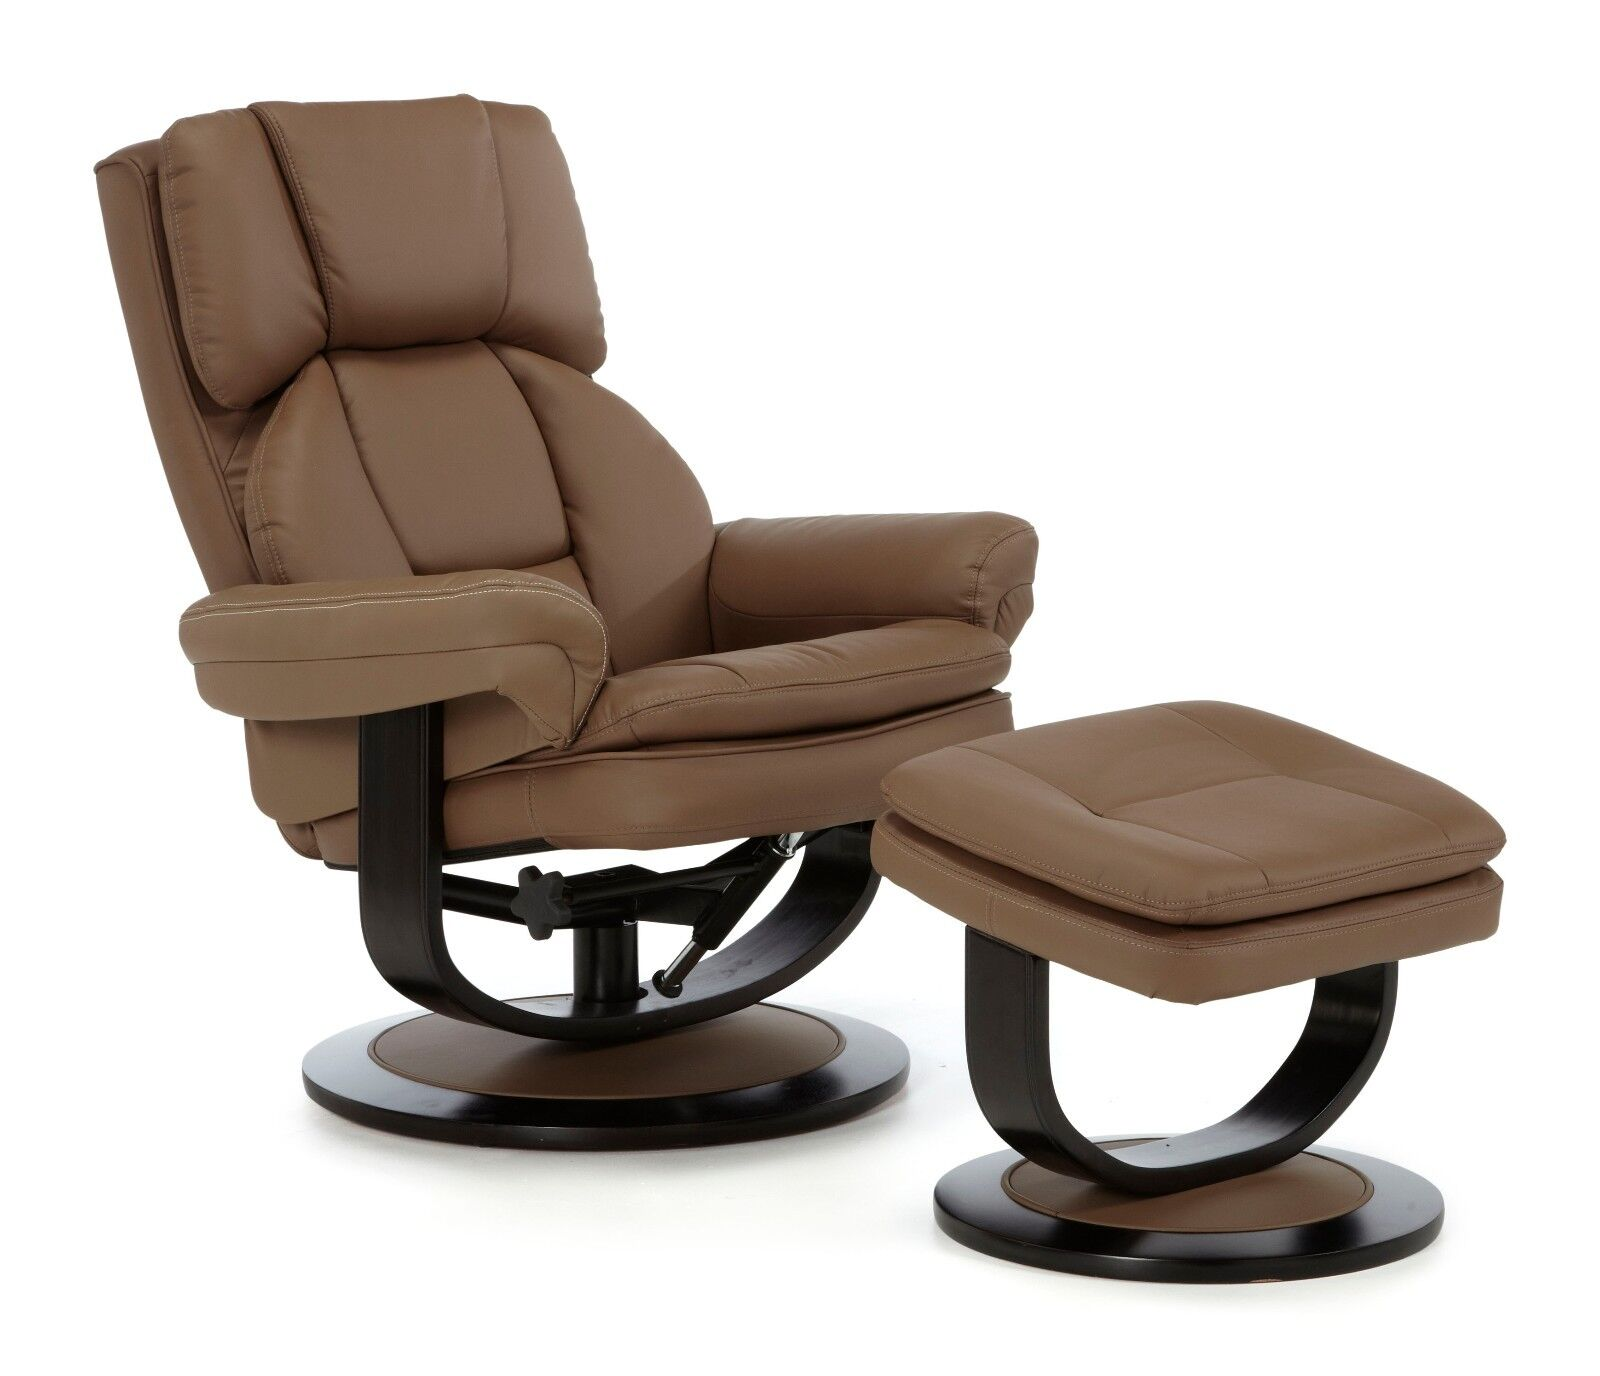 Leather Swivel Recliner Chairs Upton Luxury Swivel Recliner Chair Reclining Armchair Free